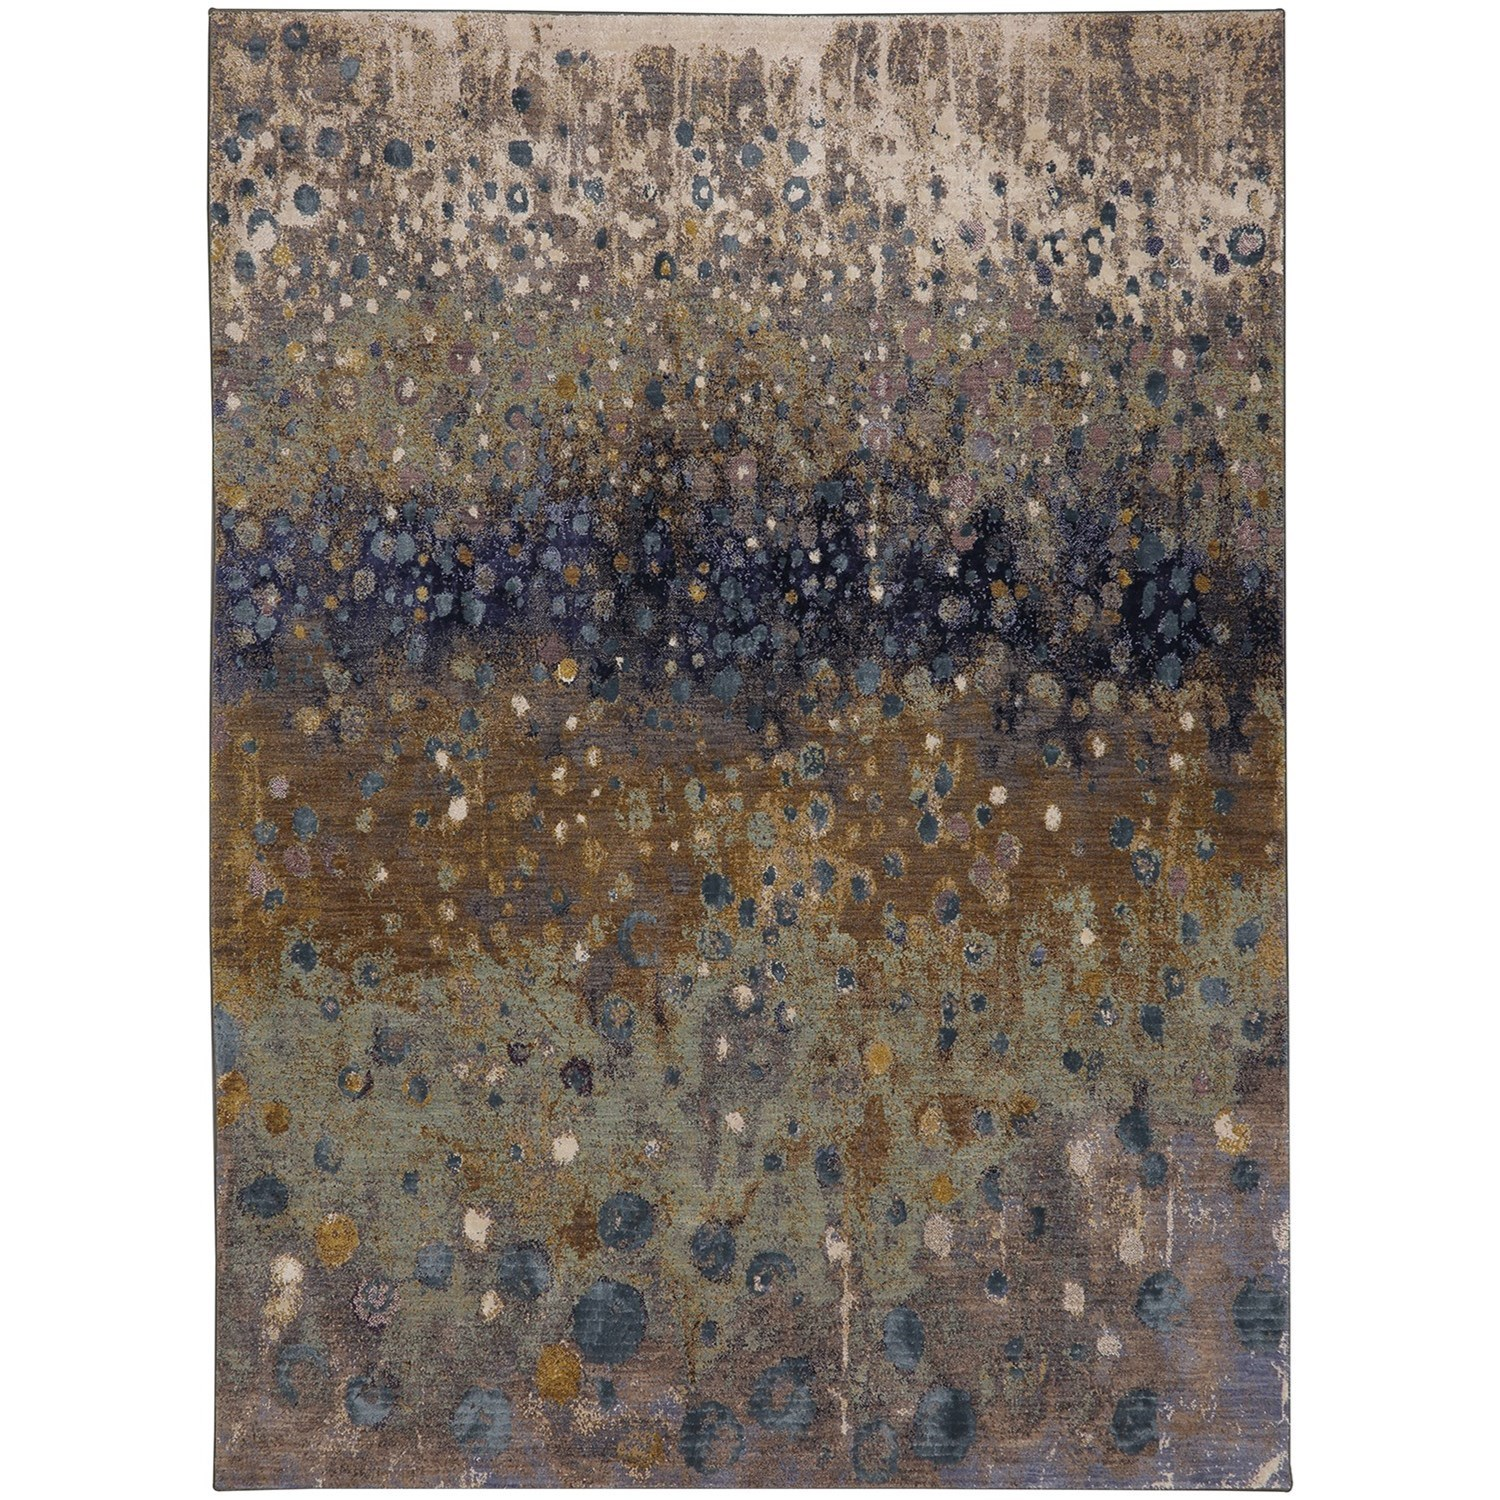 Enigma 8'x11' Rectangle Abstract Area Rug by Karastan Rugs at Darvin Furniture